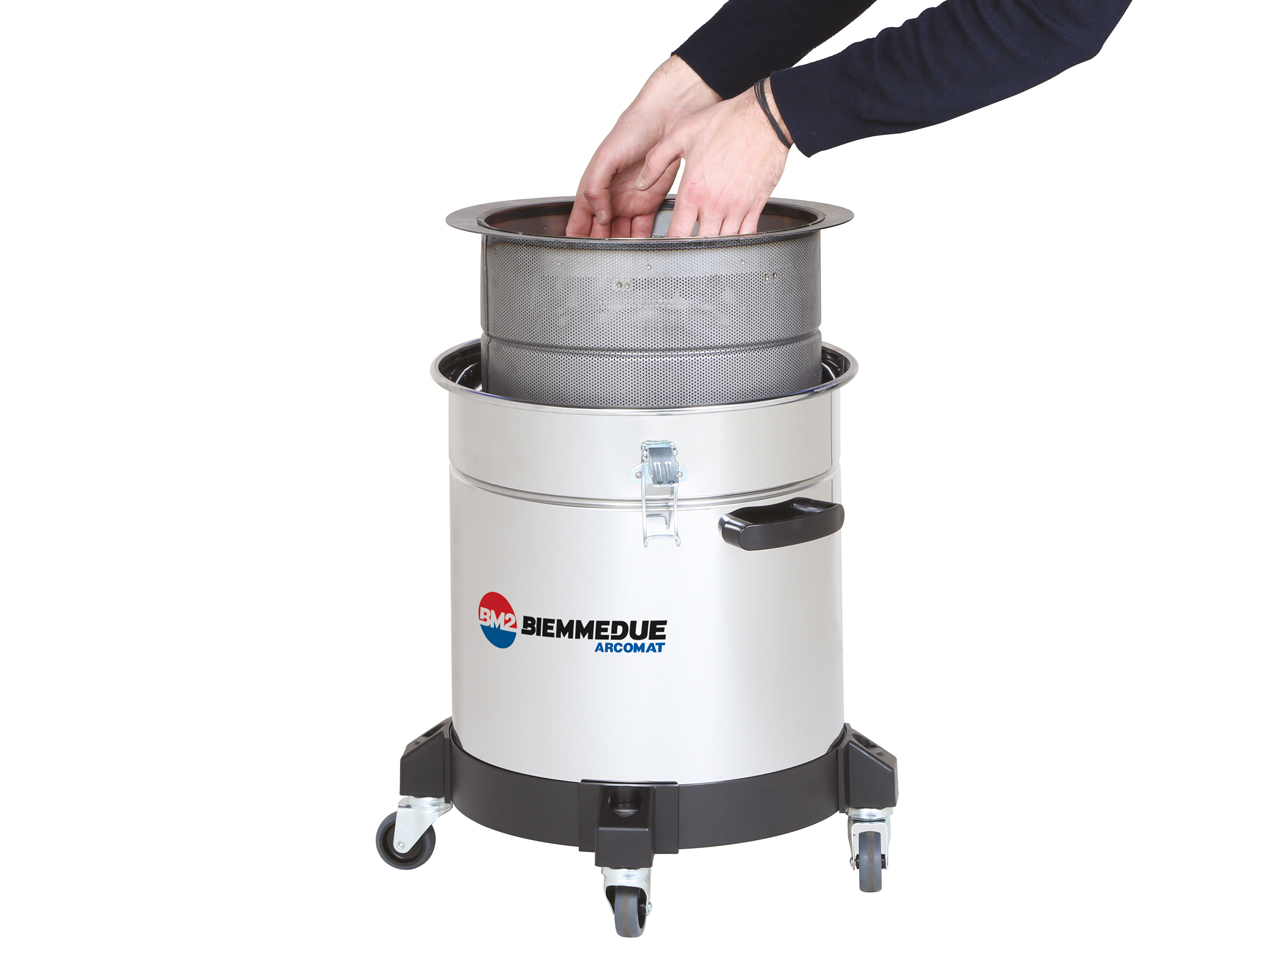 BIEMMEDUE, a leading company in the sector of industrial and professional cleaning machines, with a wide range of ARCOMAT brand products, developed in Cherasco, Piedmont, presents Maxim 40 M oli, the professional liquid vacuum cleaner designed specifically for separation and recovery of emulsified oil and shavings.